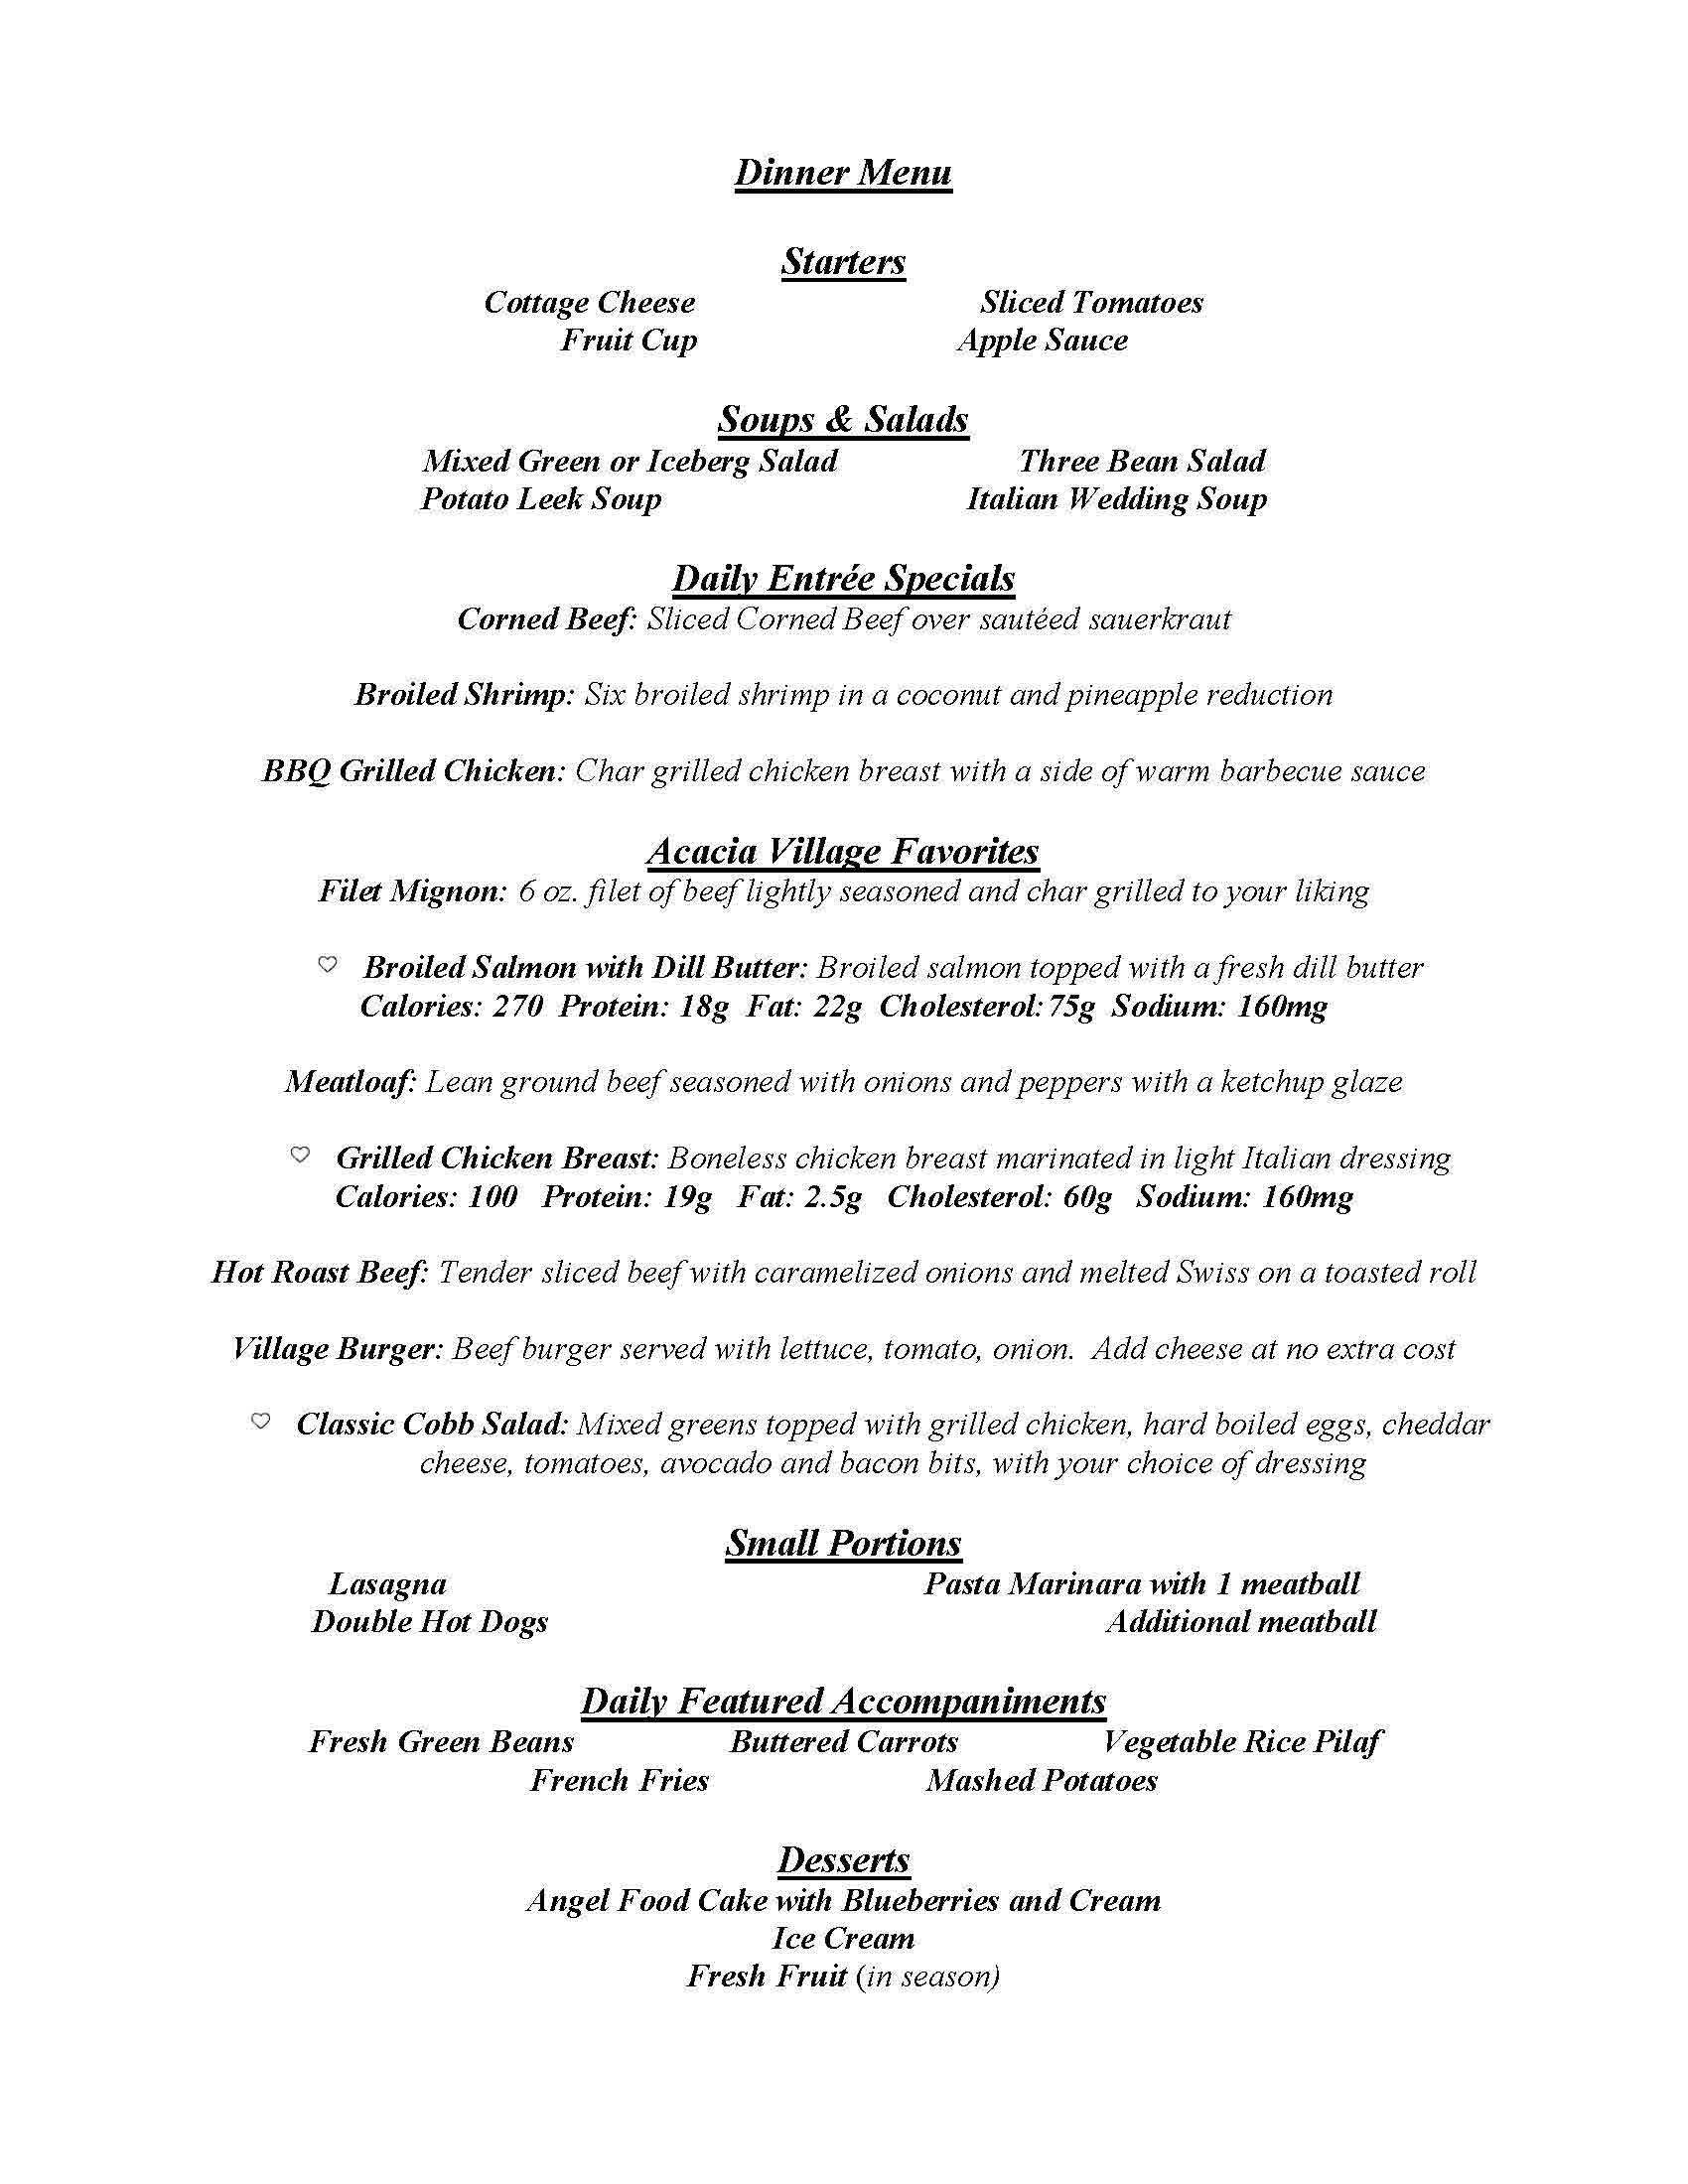 Dining Menu Gourmet Dining At Acacia Village A Senior Living Retirement Facility